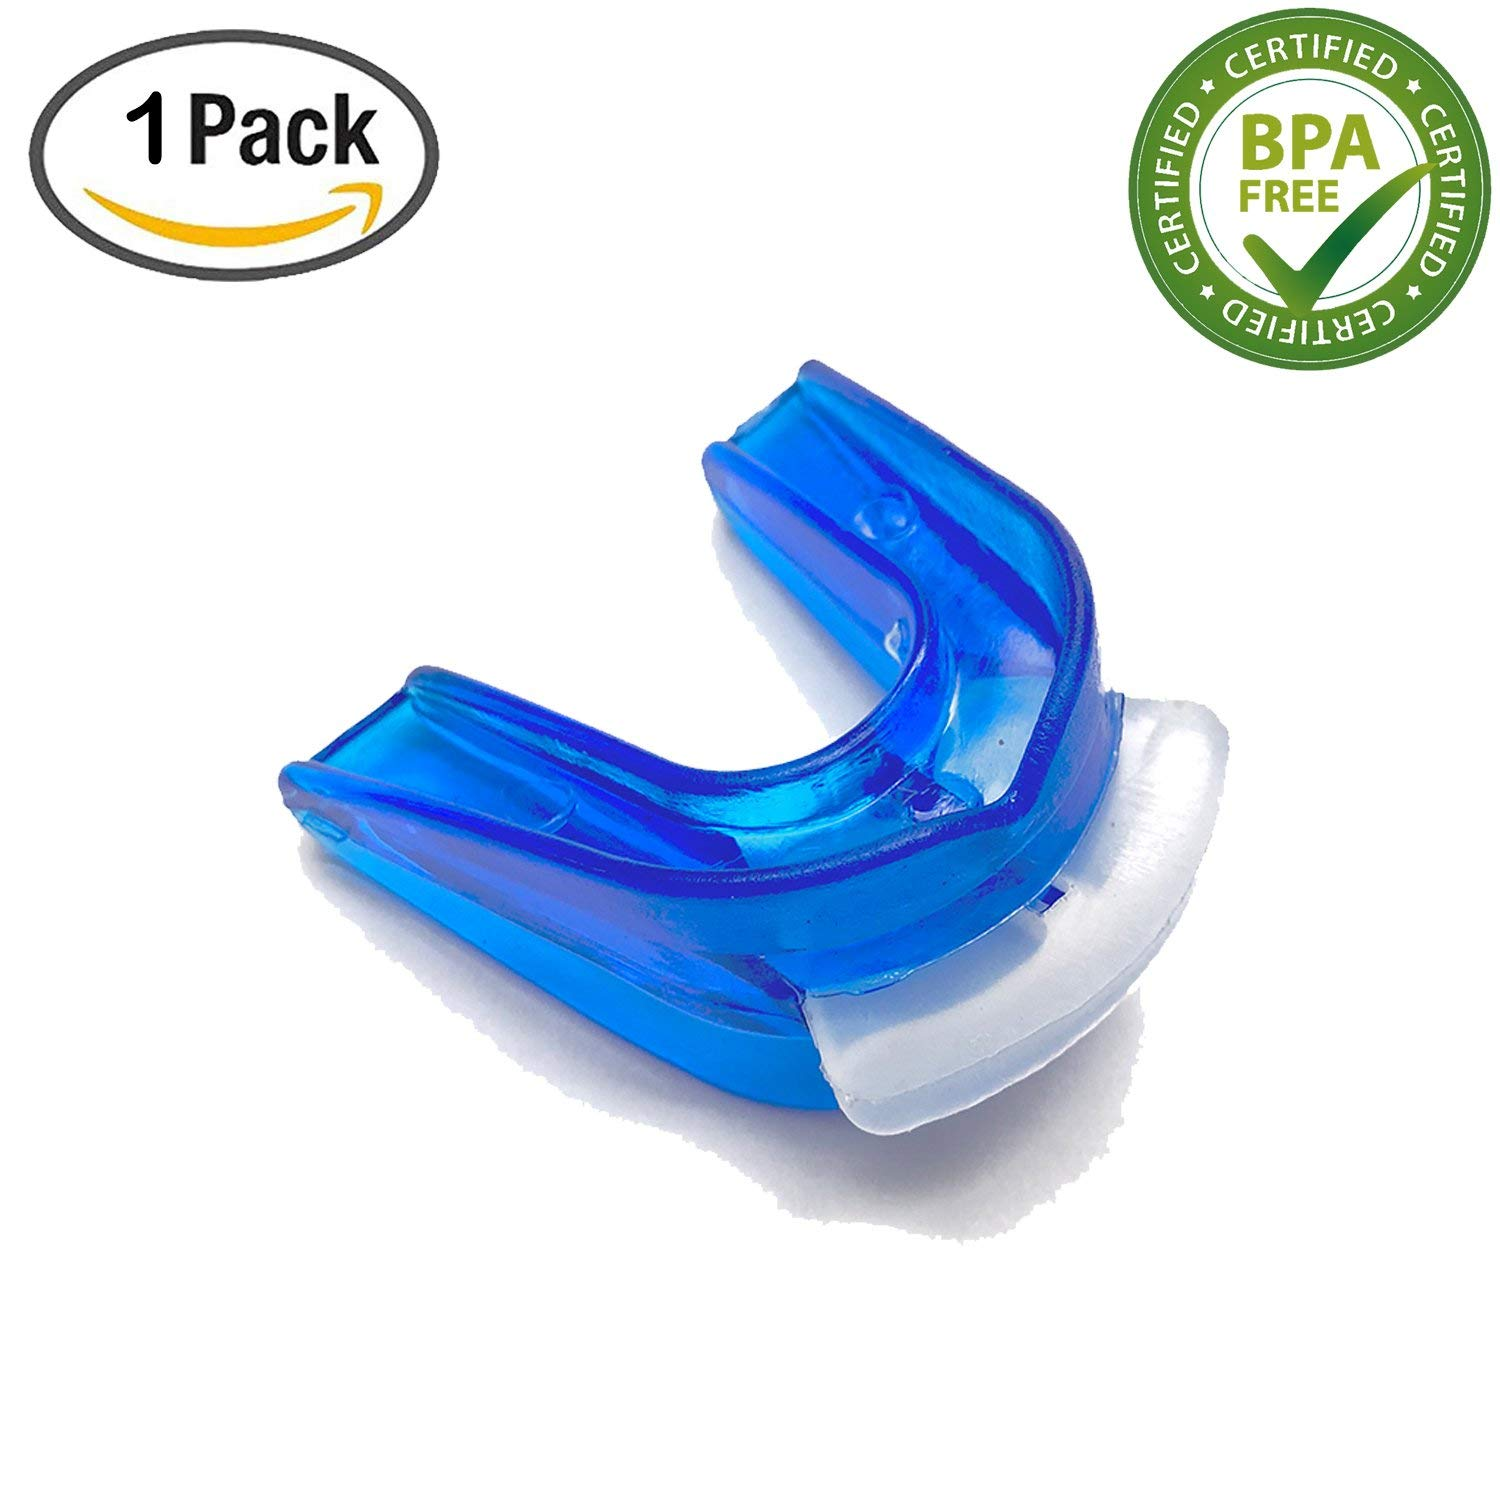 Qual80 Premium Easy Breathing Athletic Mouth Guard Contact Sports Protective Gear for Basketball, Football, Rugby, Boxing, MMA, Ice Hockey, BJJ, Muay,Taekwondo Youth/Adult